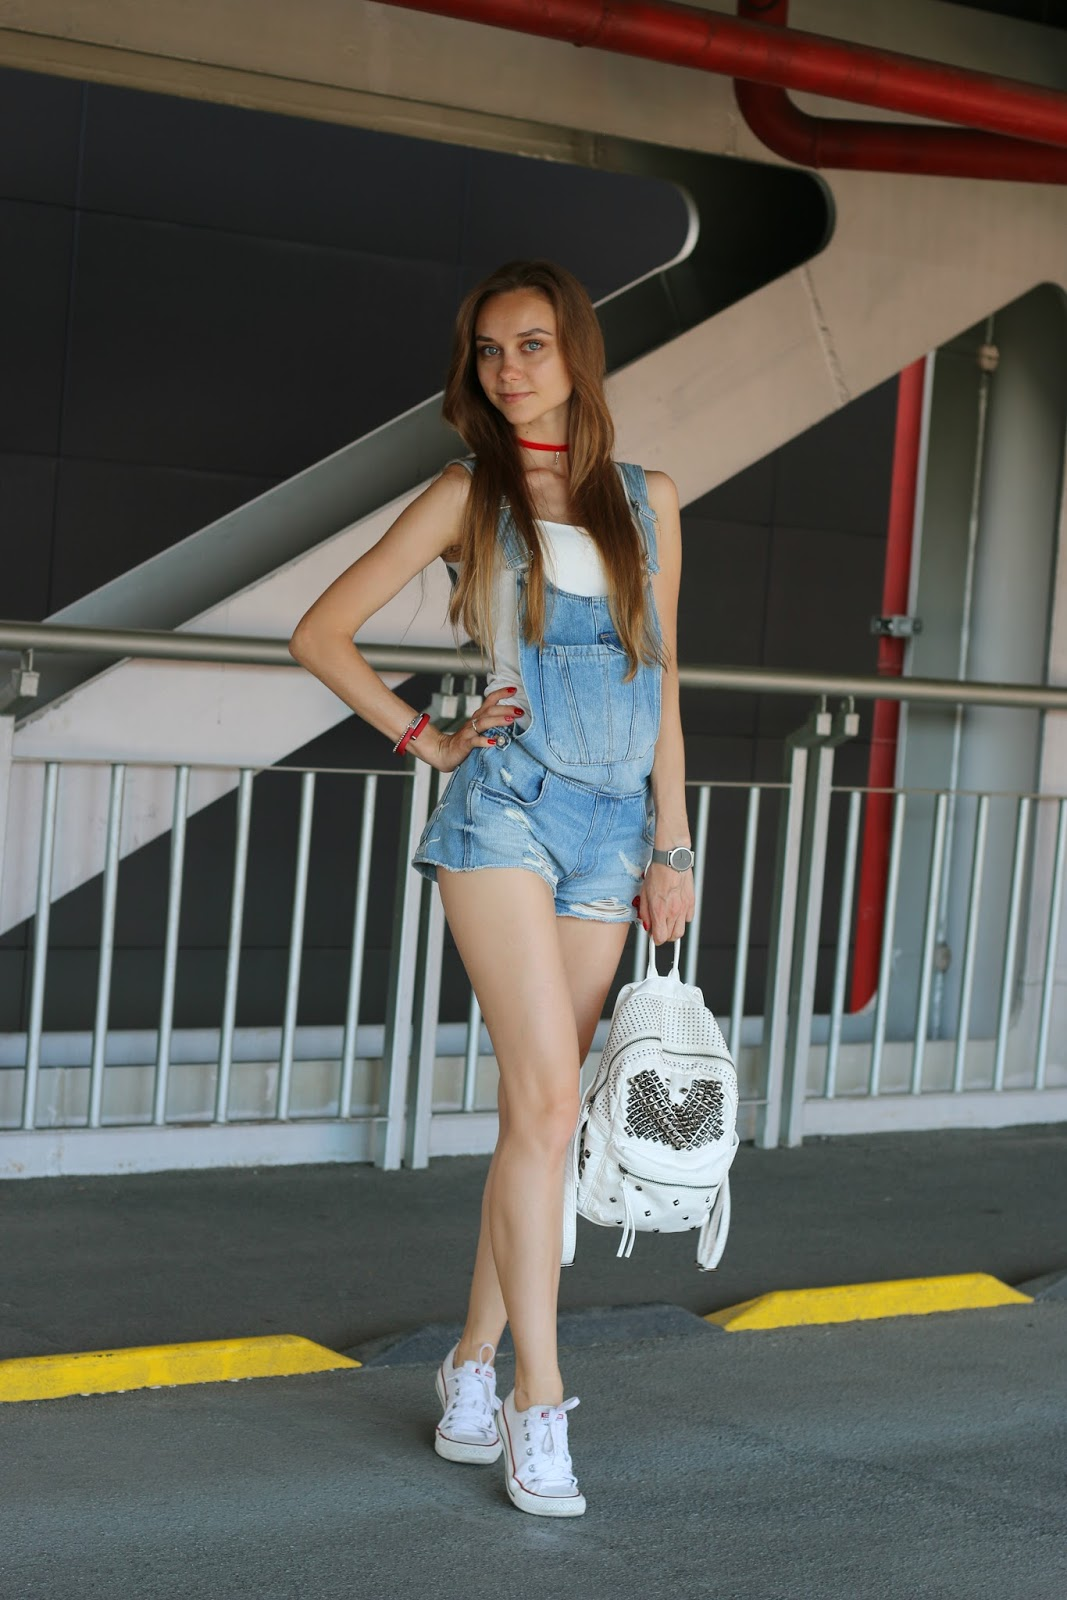 LookOn, look, lookbook, outfit, outfits, ootd, wiw, wiwt, style, fashion, fashion blog, fashion blogger, inspiration, patched overall, top, tank, backpack, converse sneakers, wiw, streetstyle, fashionblogger, styleblogger, summer outfit